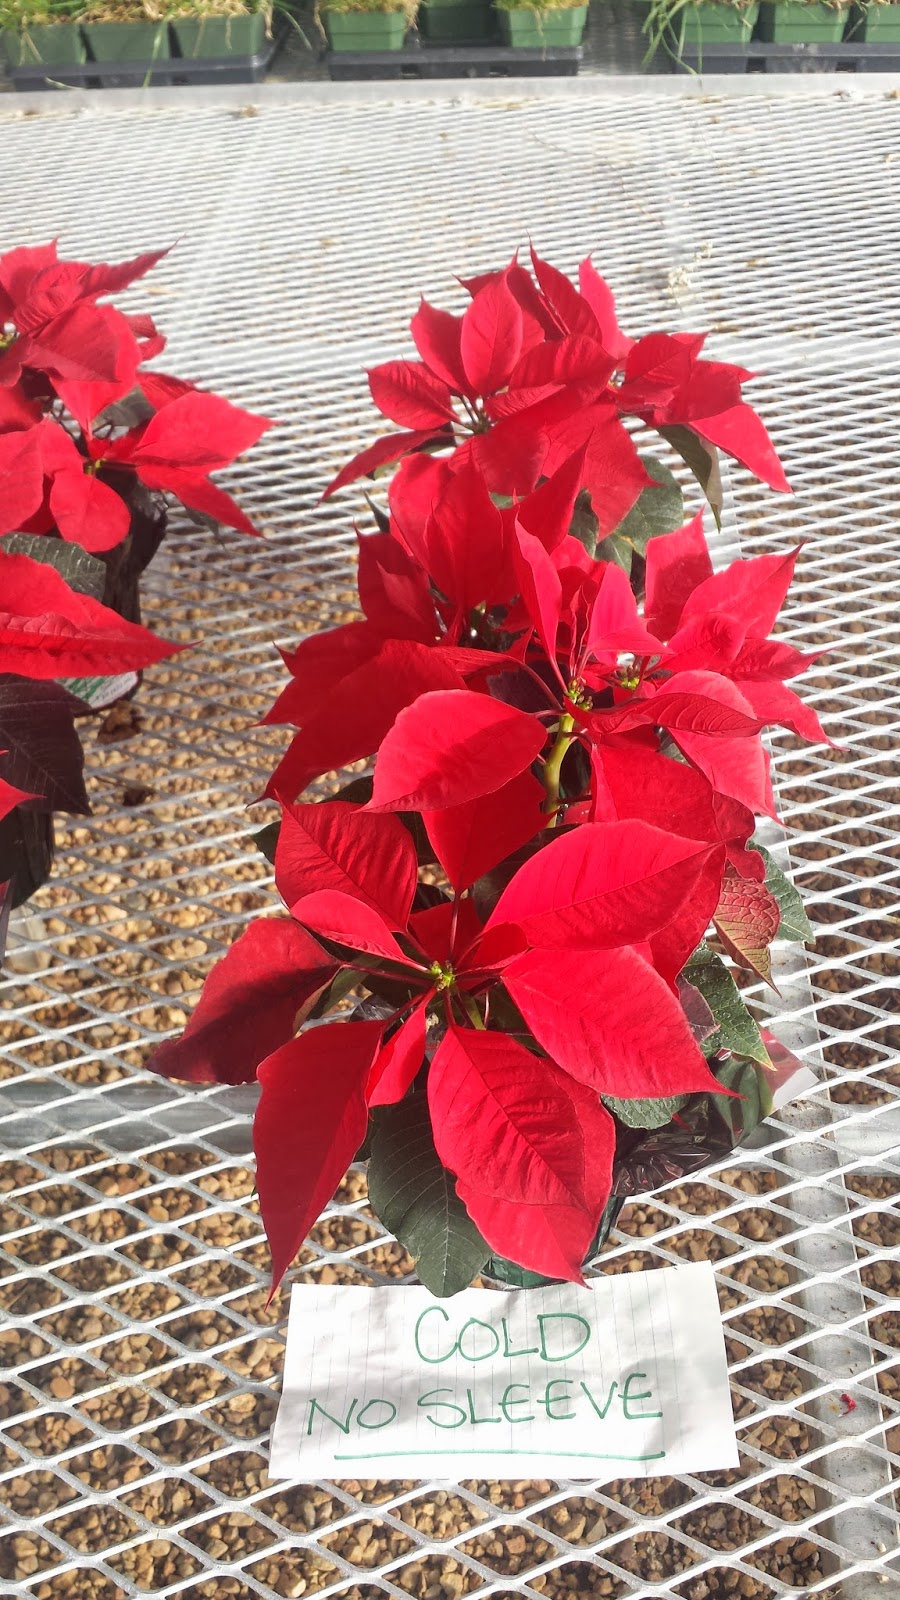 Co Horts The Great Poinsettia Experiment That Failed